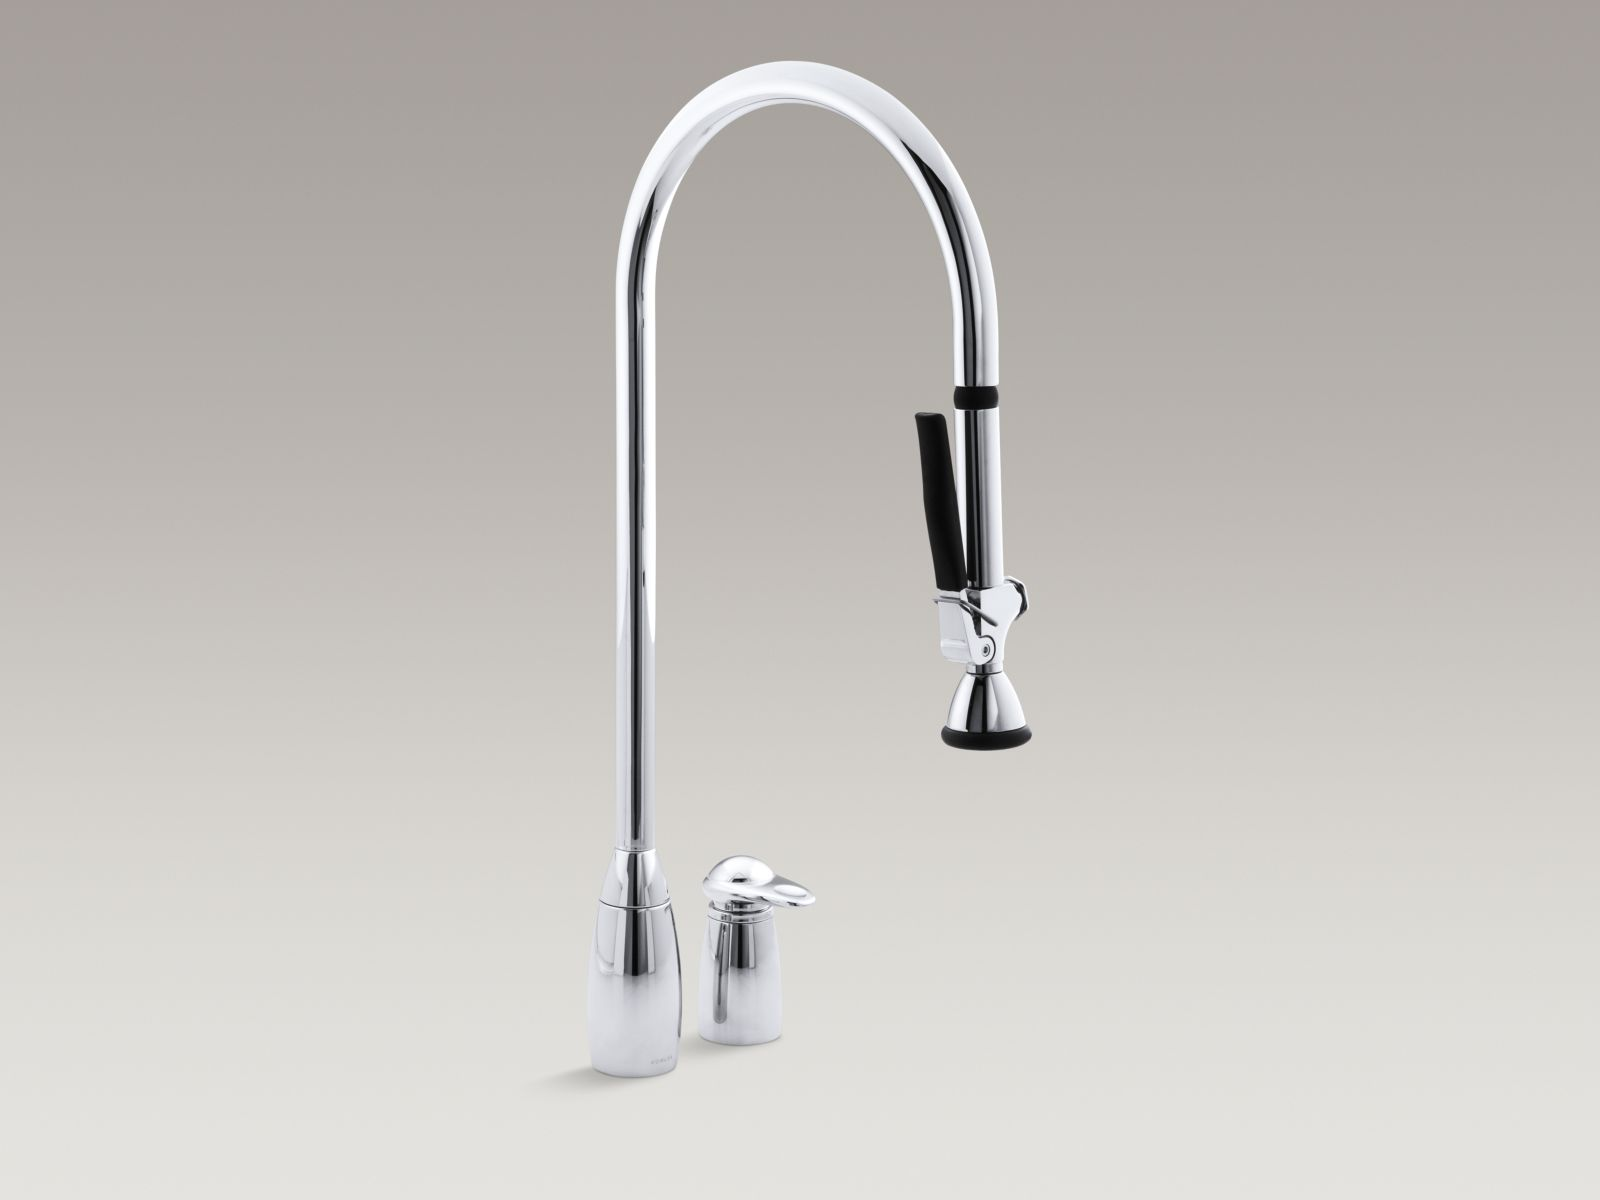 shop laundry en products back spout with b langer tub out swivel pull upt faucet